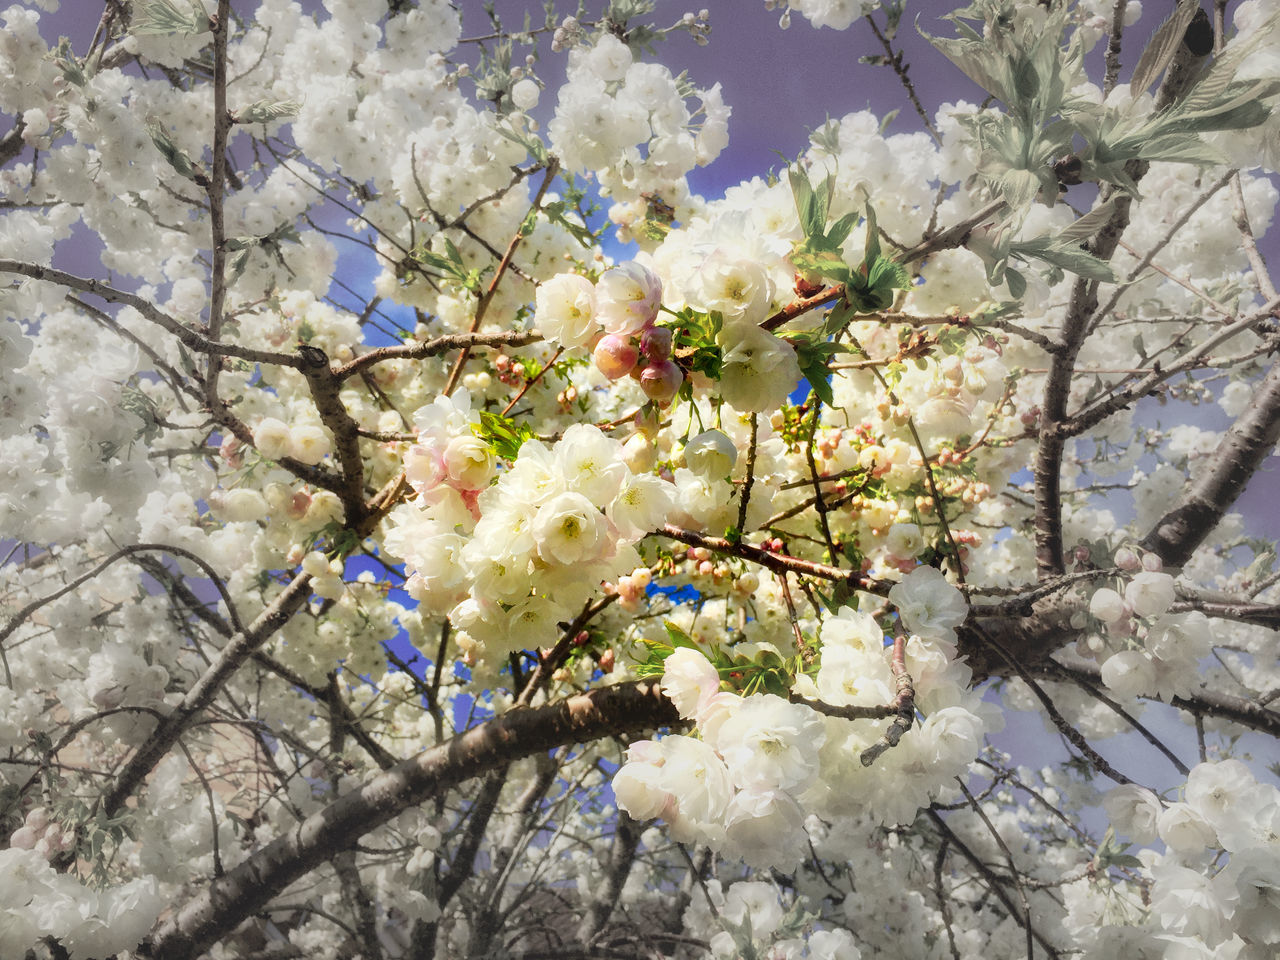 Beauty In Nature Blossom Branch Cherry Blossom Close-up Day Flower Flower Head Fragility Freshness Growth Low Angle View Nature No People Outdoors Sky Springtime Tree Twig